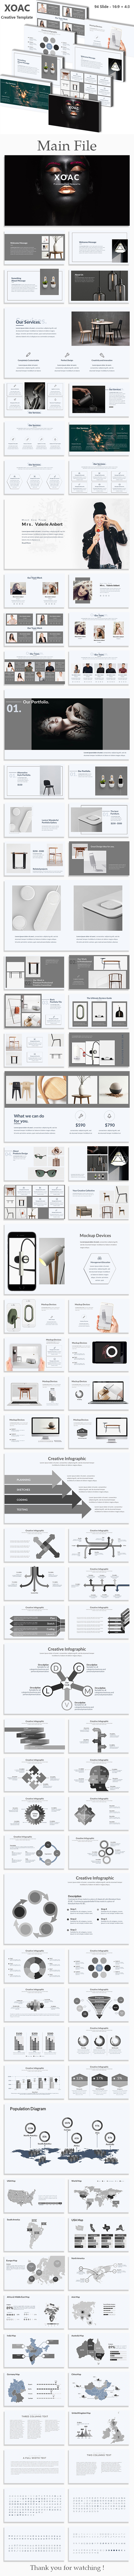 Xoac Creative PowerPoint Template - Creative PowerPoint Templates